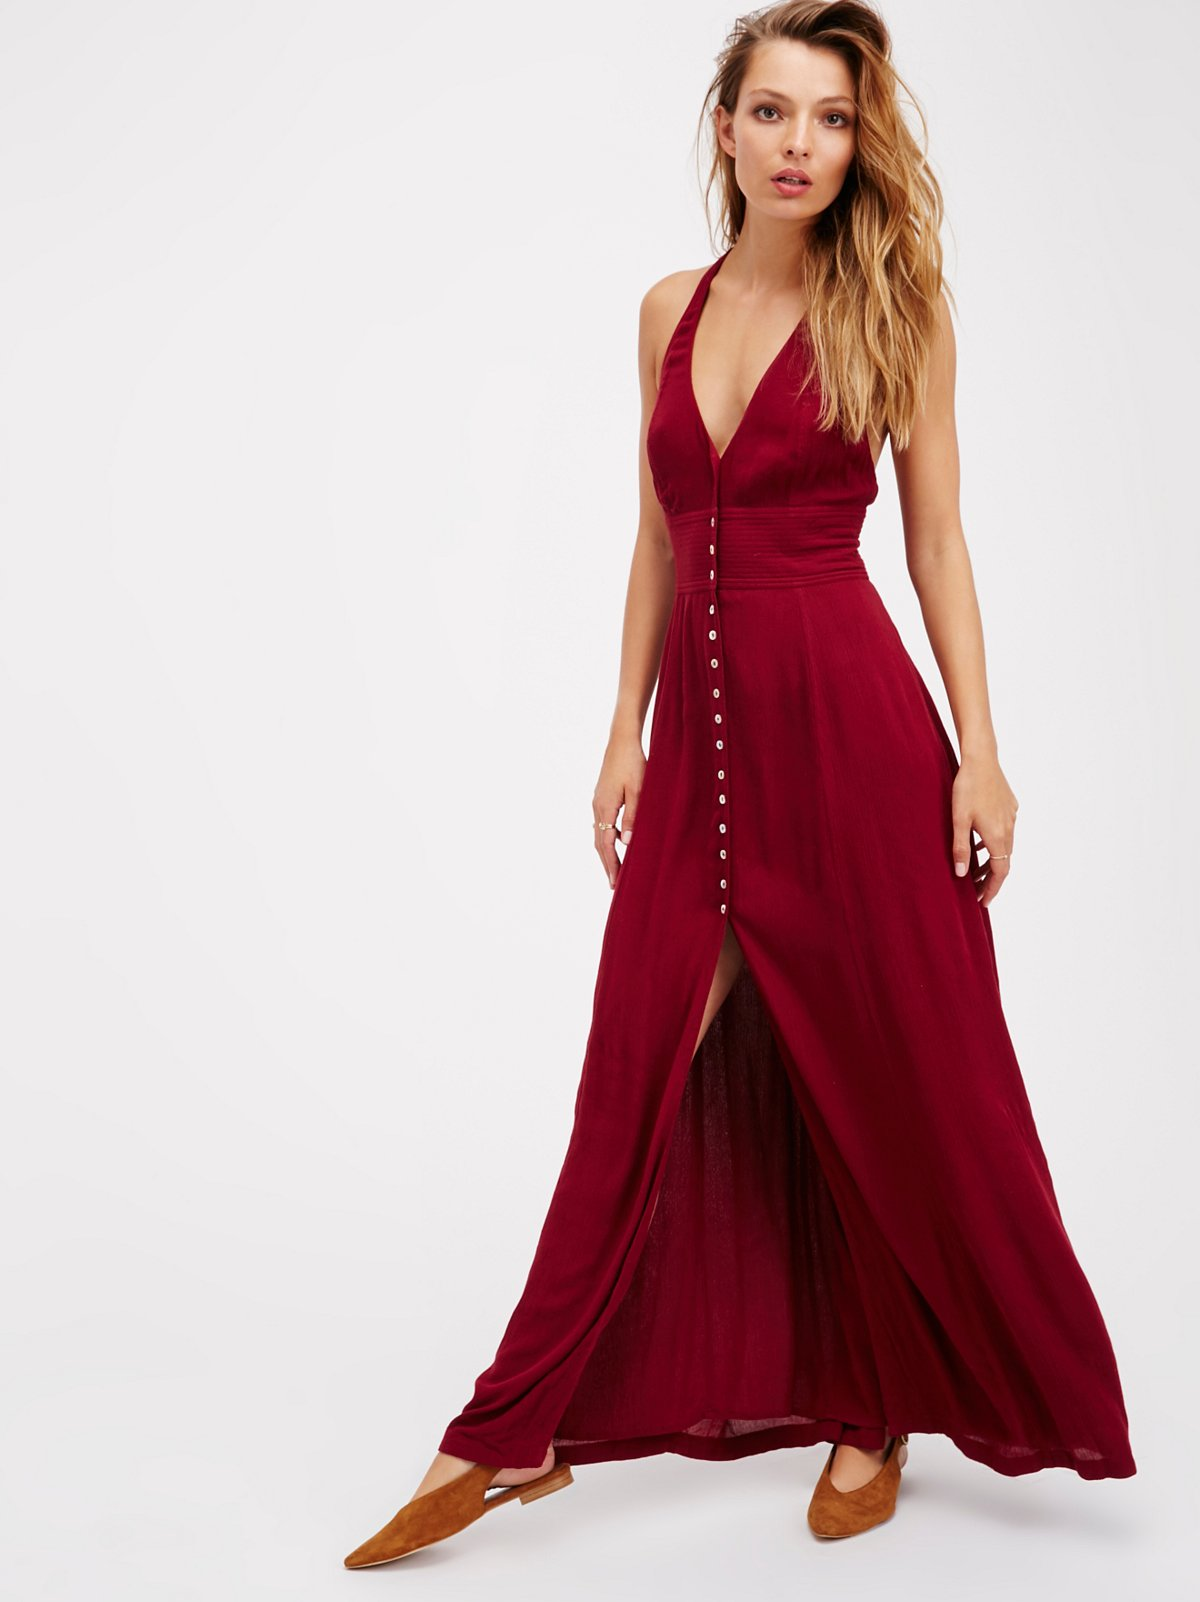 All About It Maxi